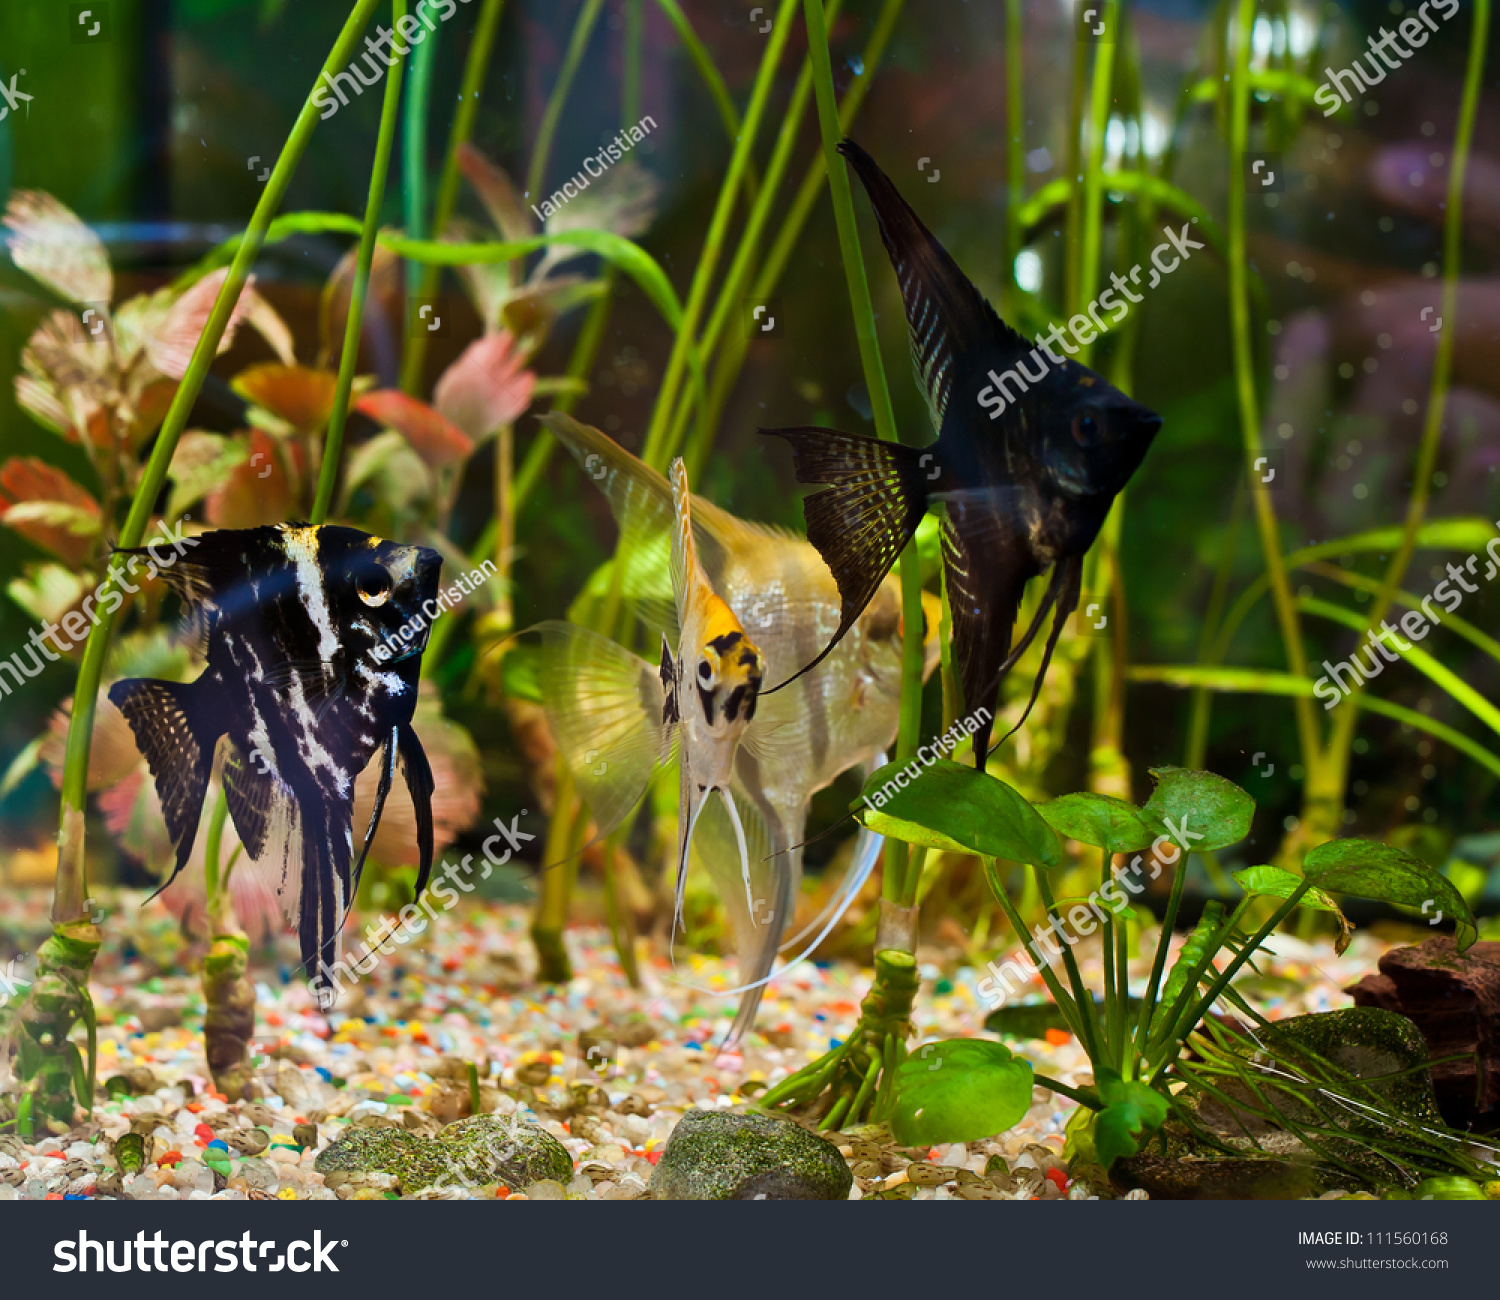 Freshwater aquarium fish angelfish - Fish Angelfish In A Tropical Fish Tank With Many Plants